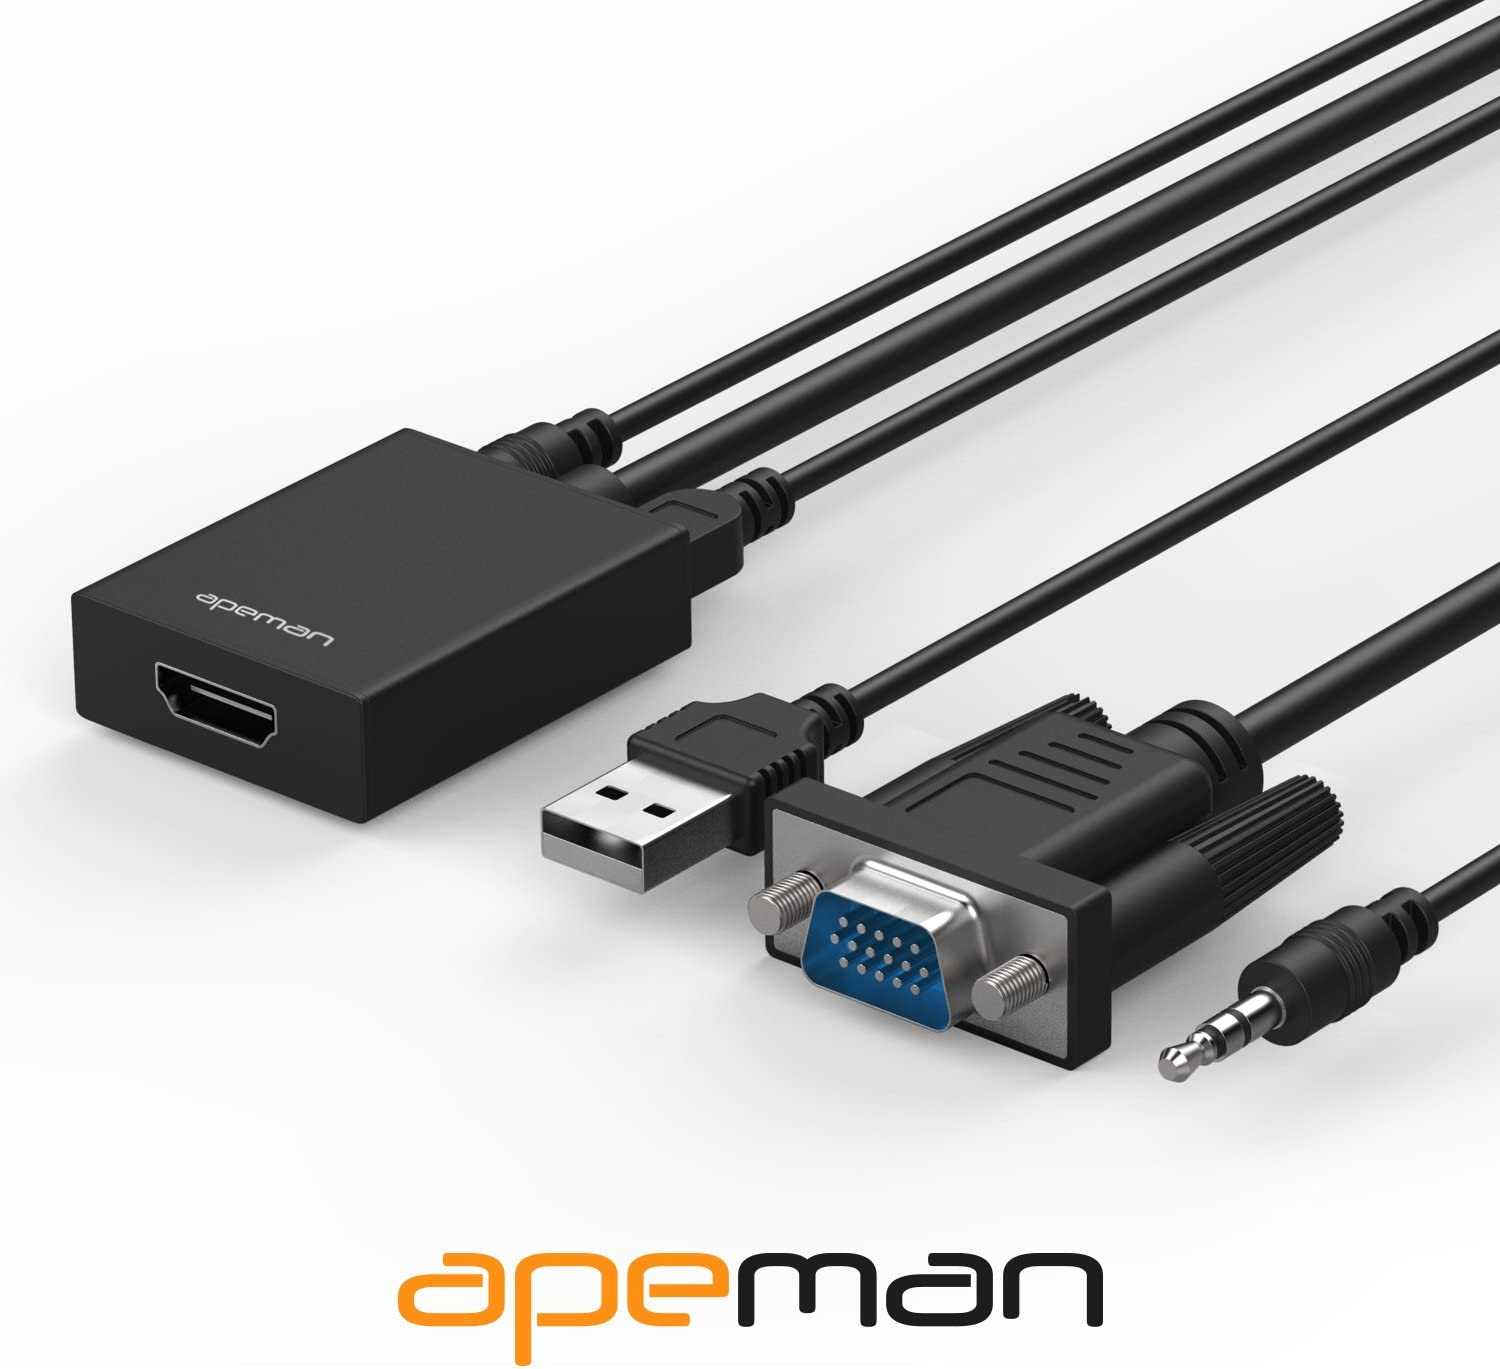 AV APEMAN VGA to HDMI Converter Adapter with Audio Support 1080P HDTV and USB Cable for Power Supply Supported for TV DVD Laptop Projector Computer